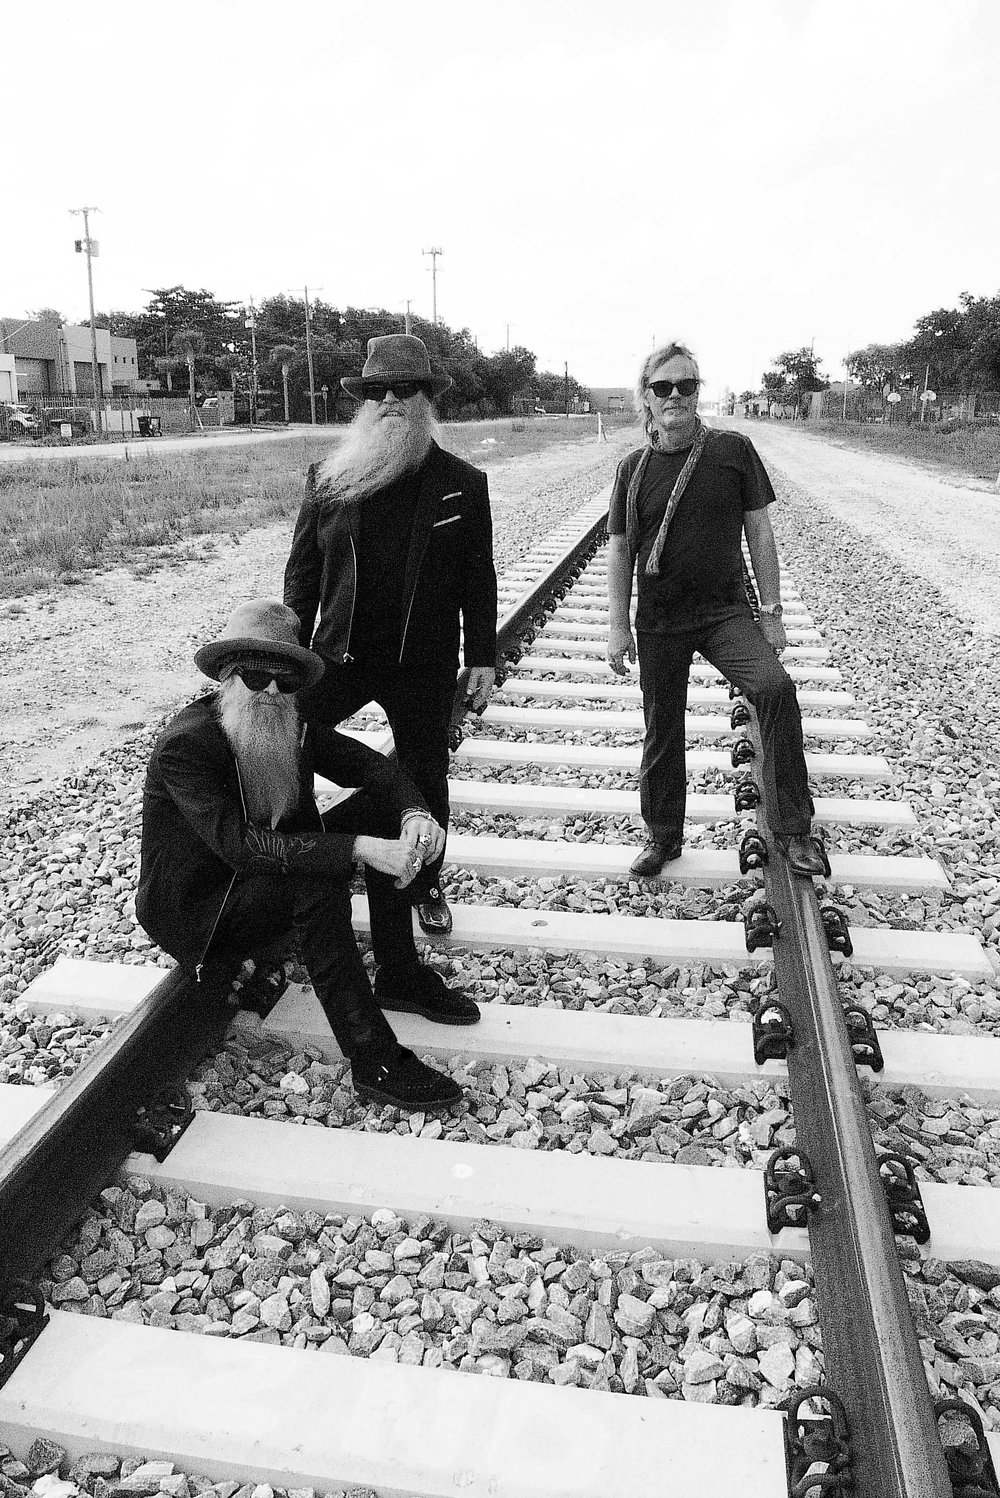 ZZ TOP - Press Photo.jpg